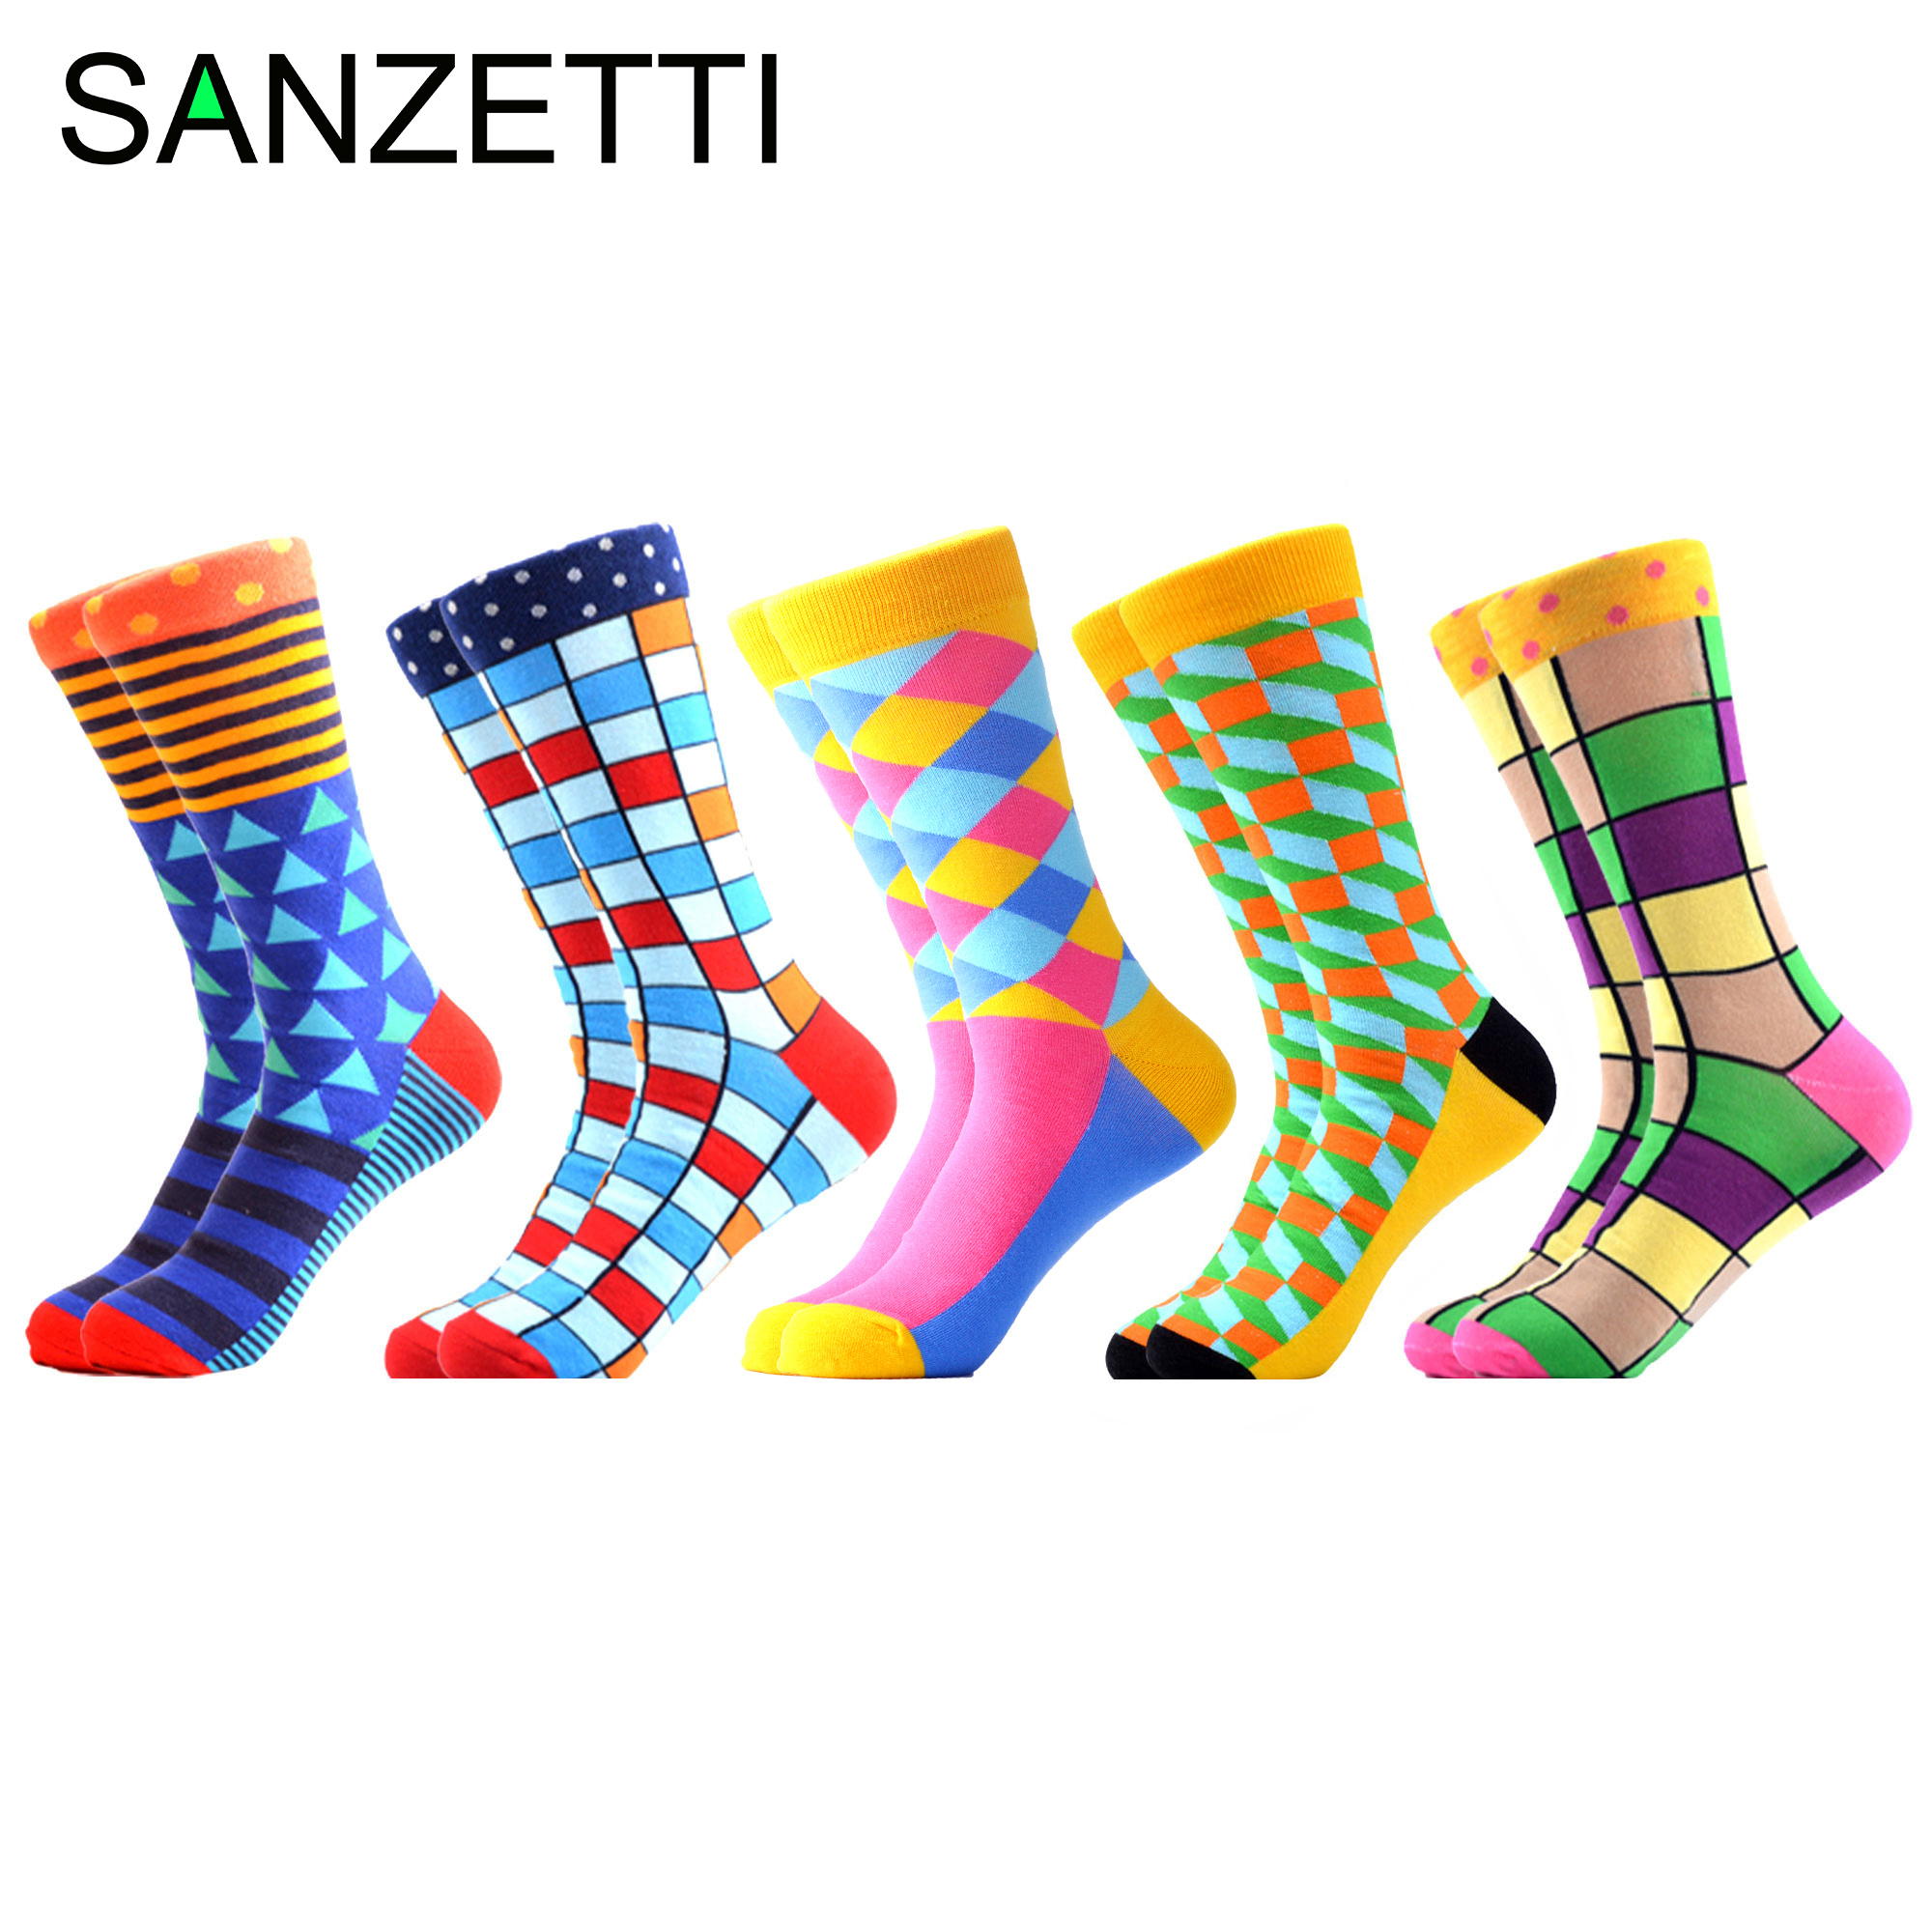 SANZETTI Colorful Men Funny Combed Cotton Tube Socks Dress Tend Hip Hop Novelty Street Skate Crew Socks Wedding Happy Gift Socks